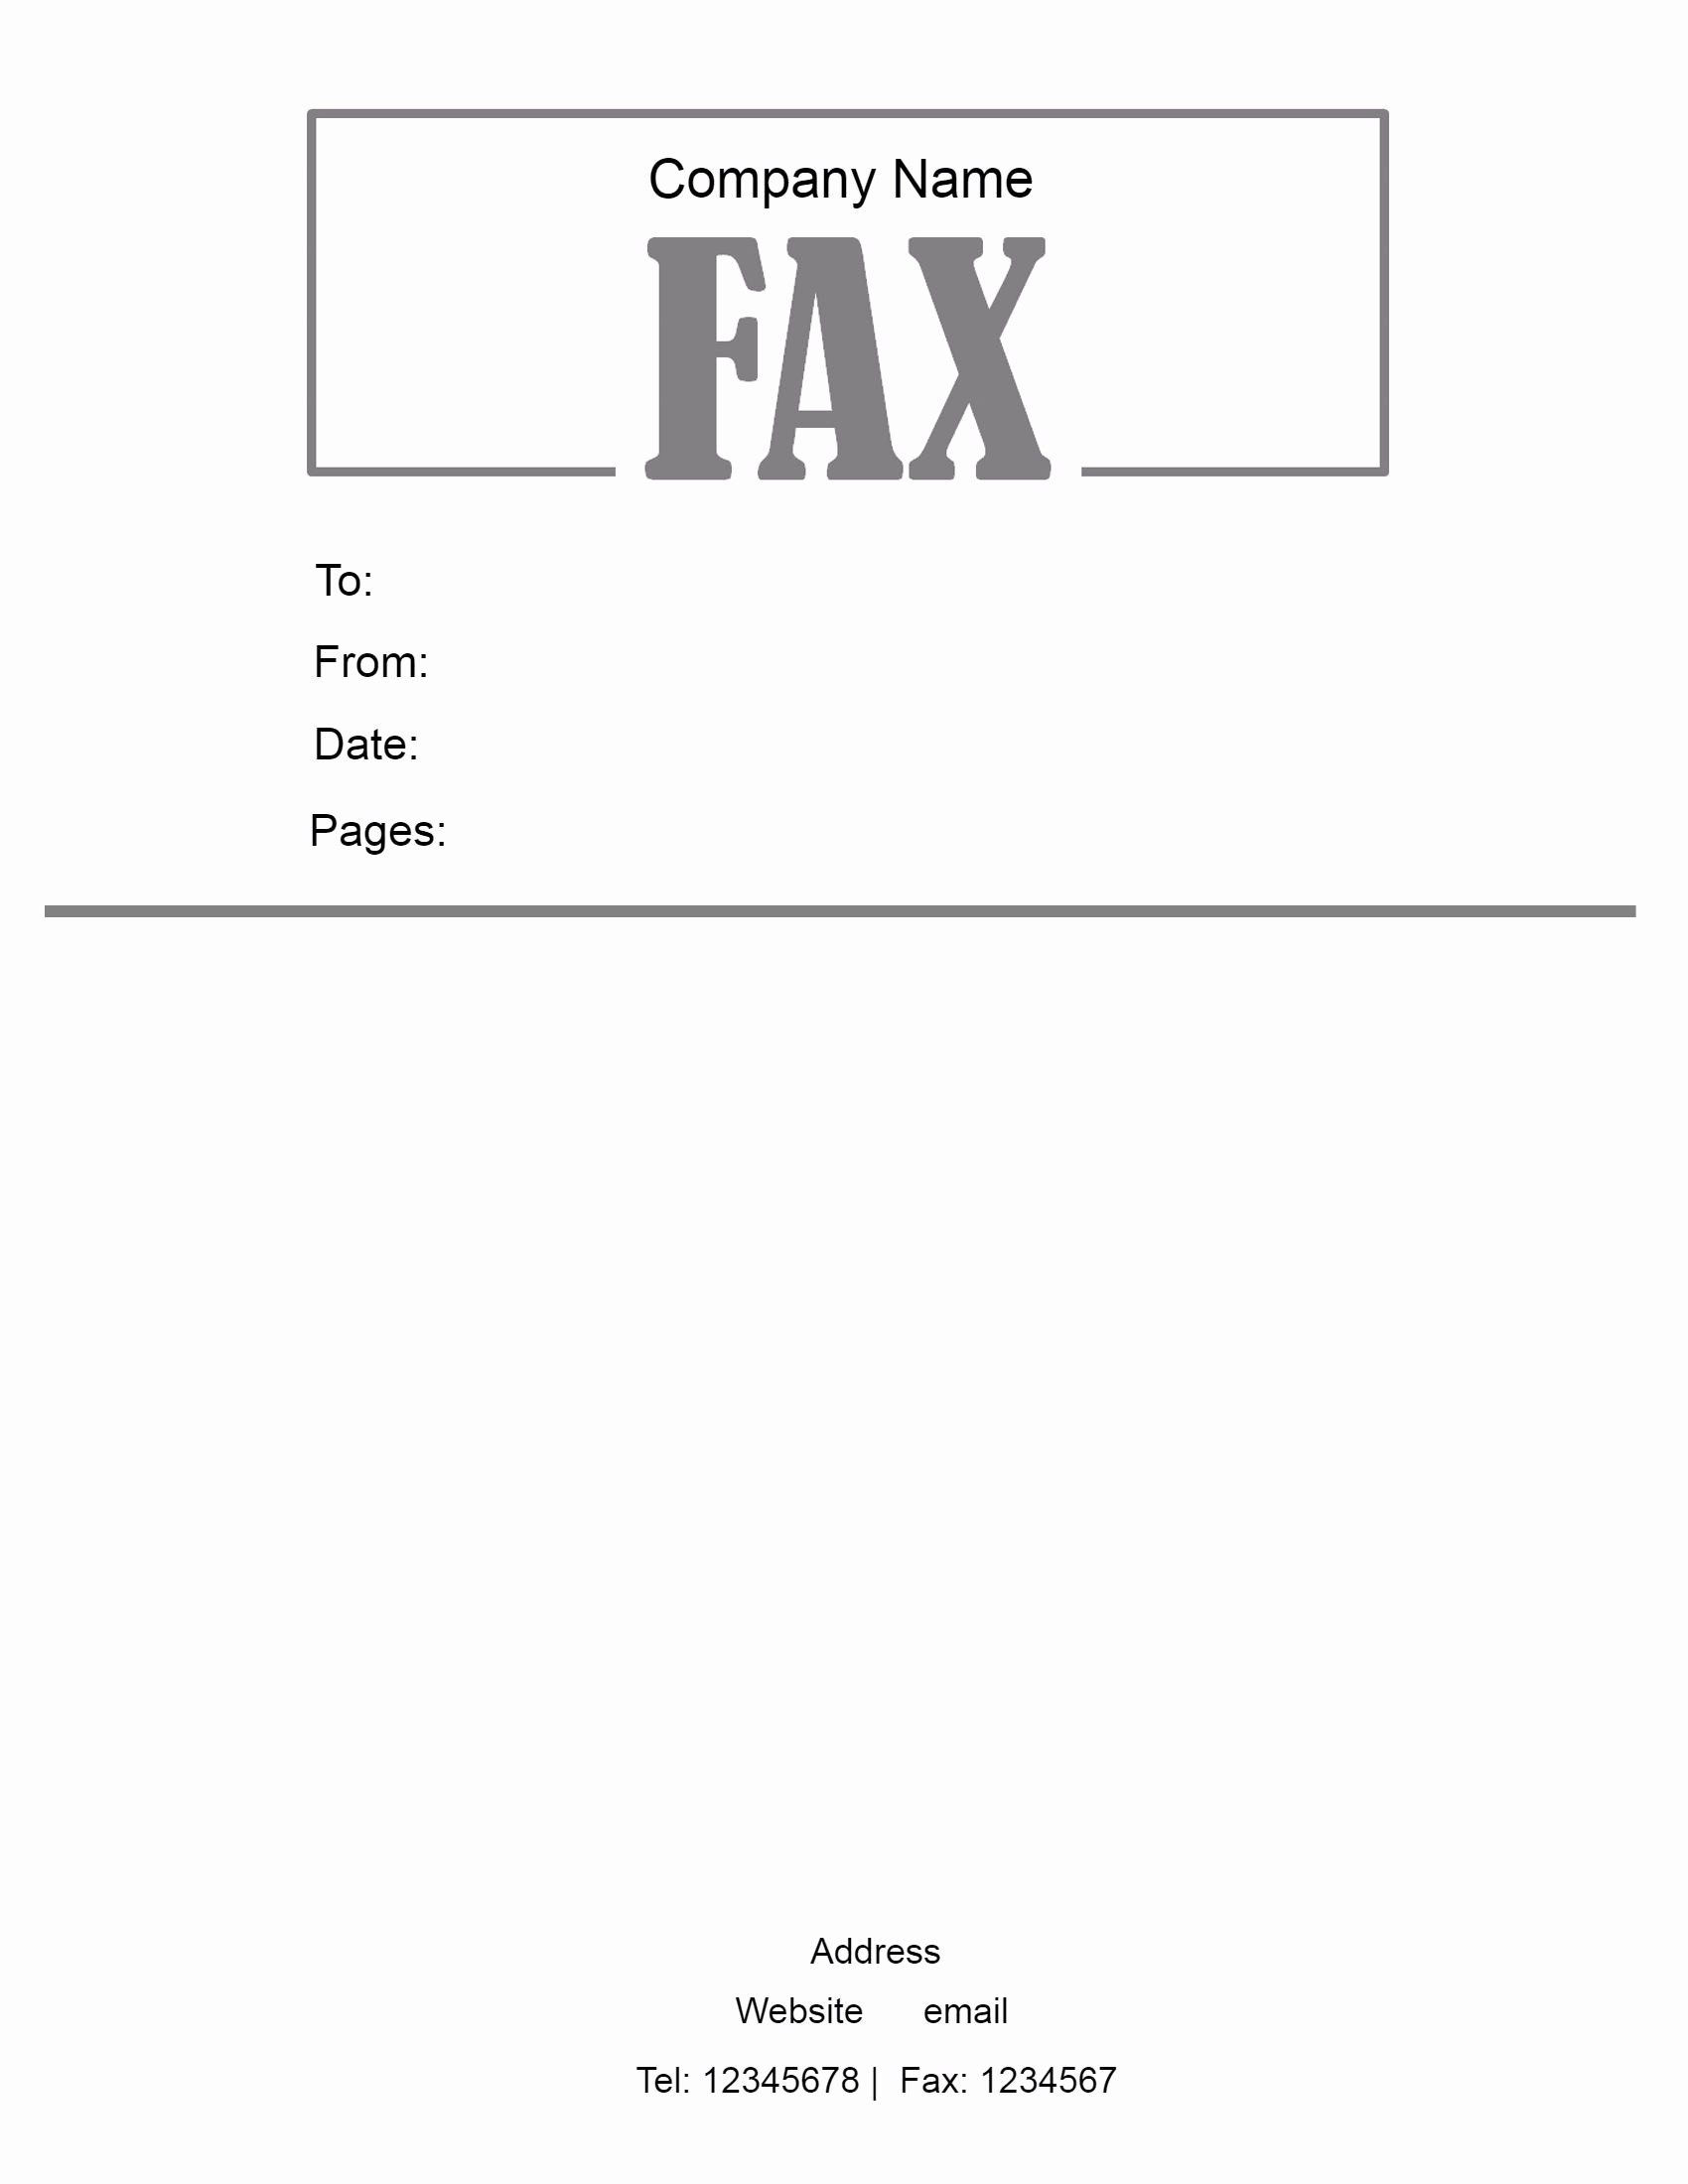 Cover Sheet for A Fax Lovely Free Fax Cover Letter Template